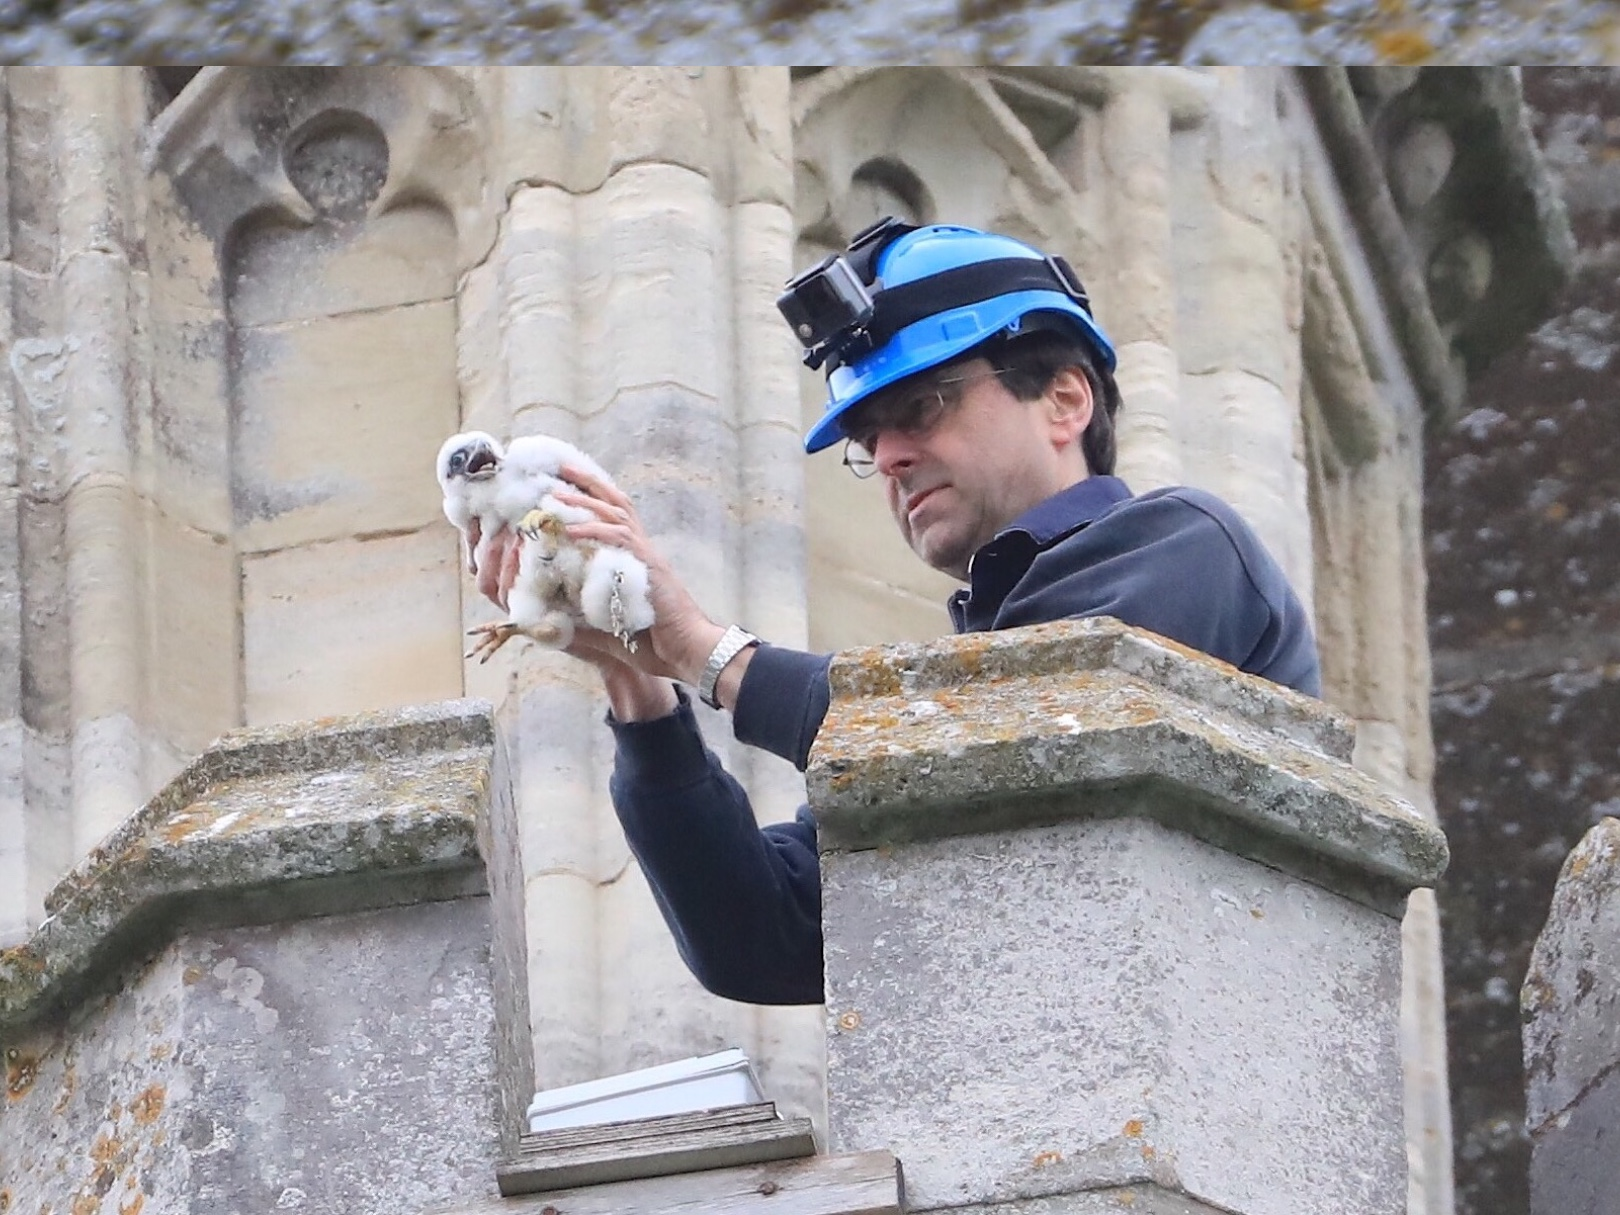 Ringing the chicks at Chichester Cathedral